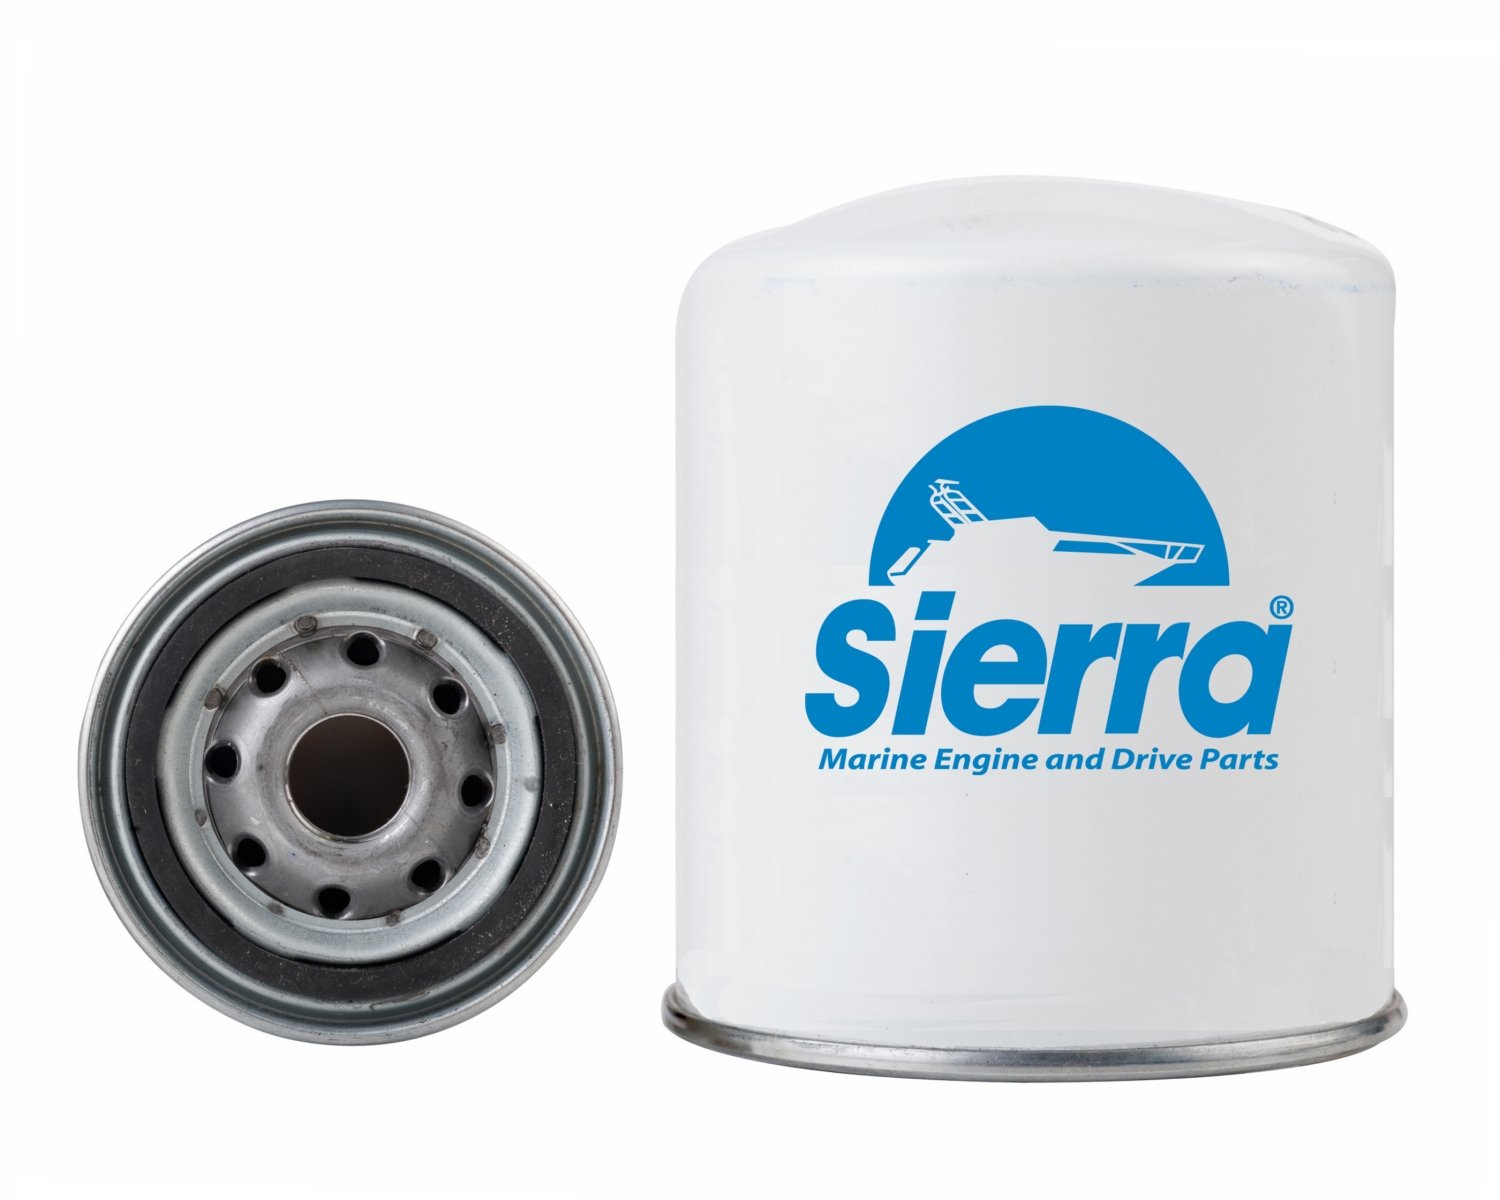 Durable Service Sierra 18 8126 Diesel Fuel Filter For Volvo Penta 2004 Dodge Magnum Marine Engines 861477